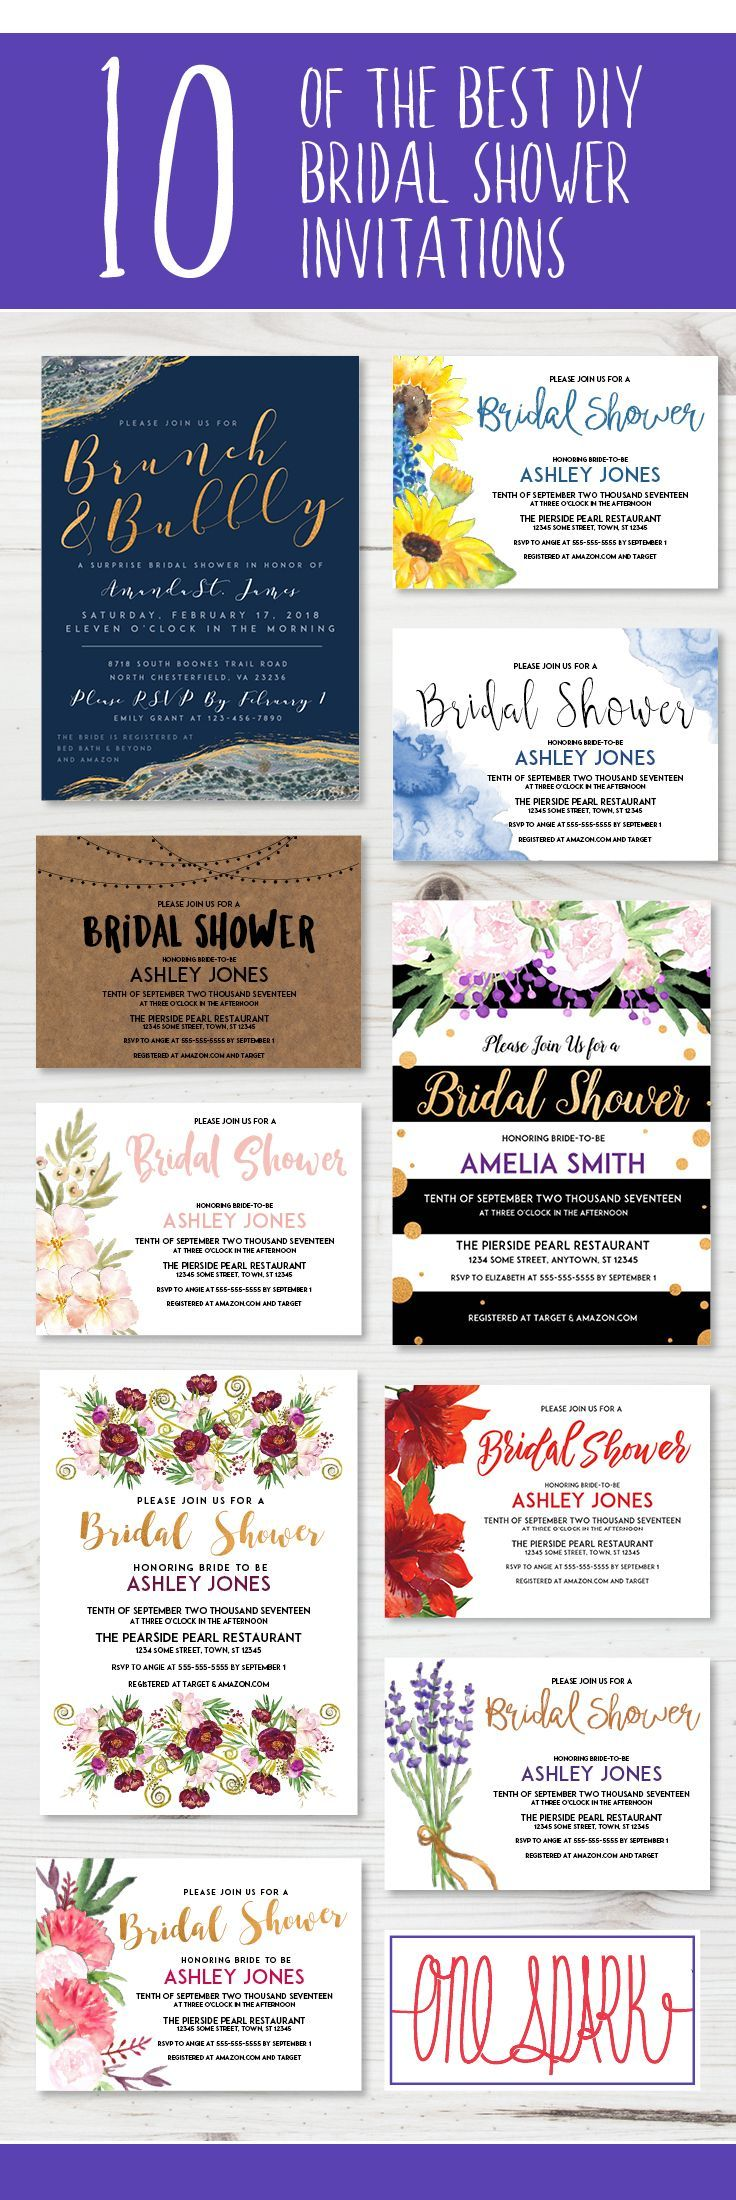 Ten of the best diy wedding shower invitations. These custom wedding ...